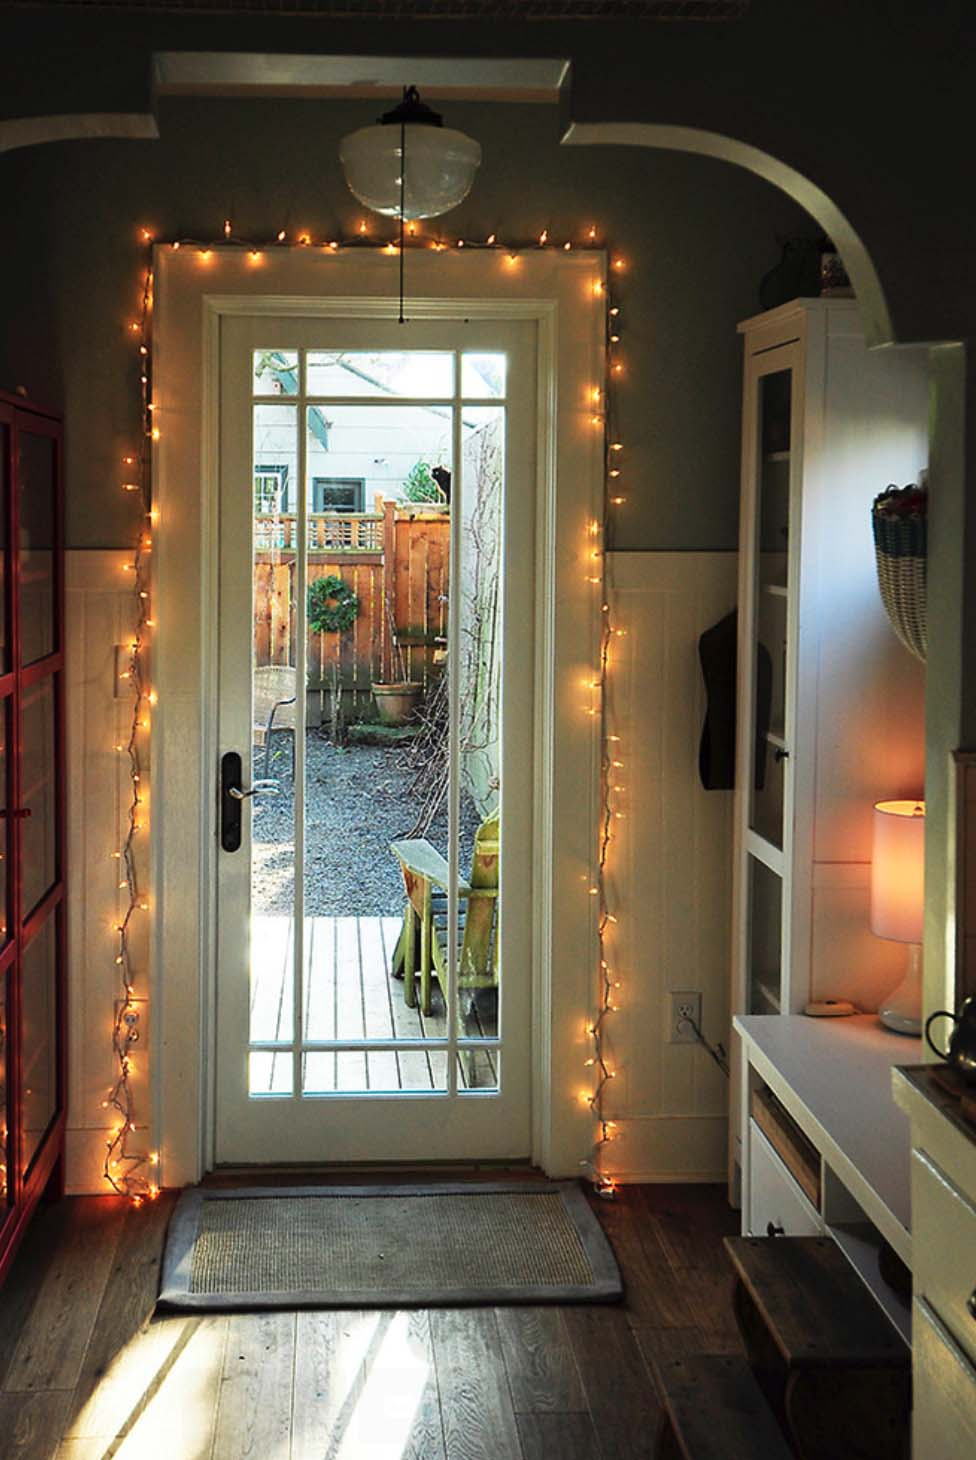 25 enhance the threshold with a sparkling welcome - Home Decor Lights